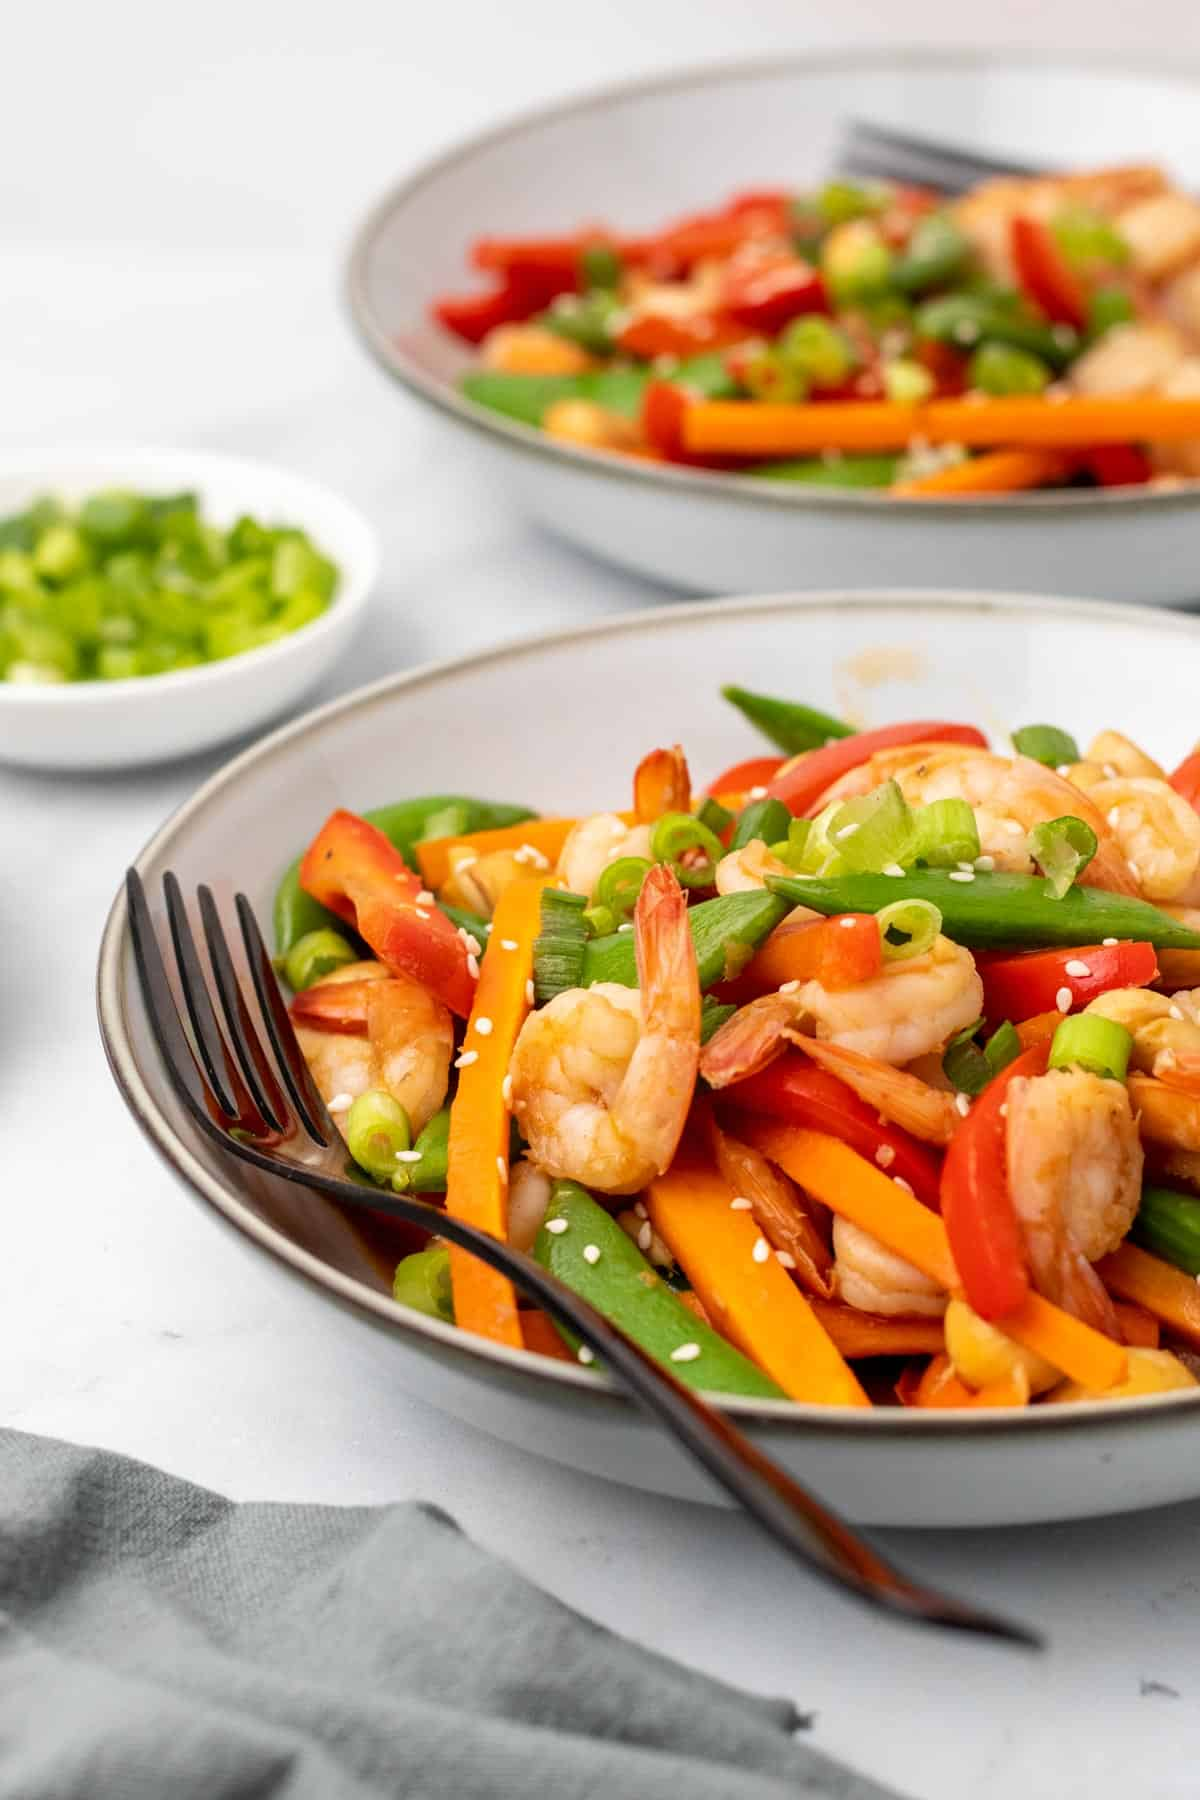 Close-up of stir fry in a white bowl with a fork